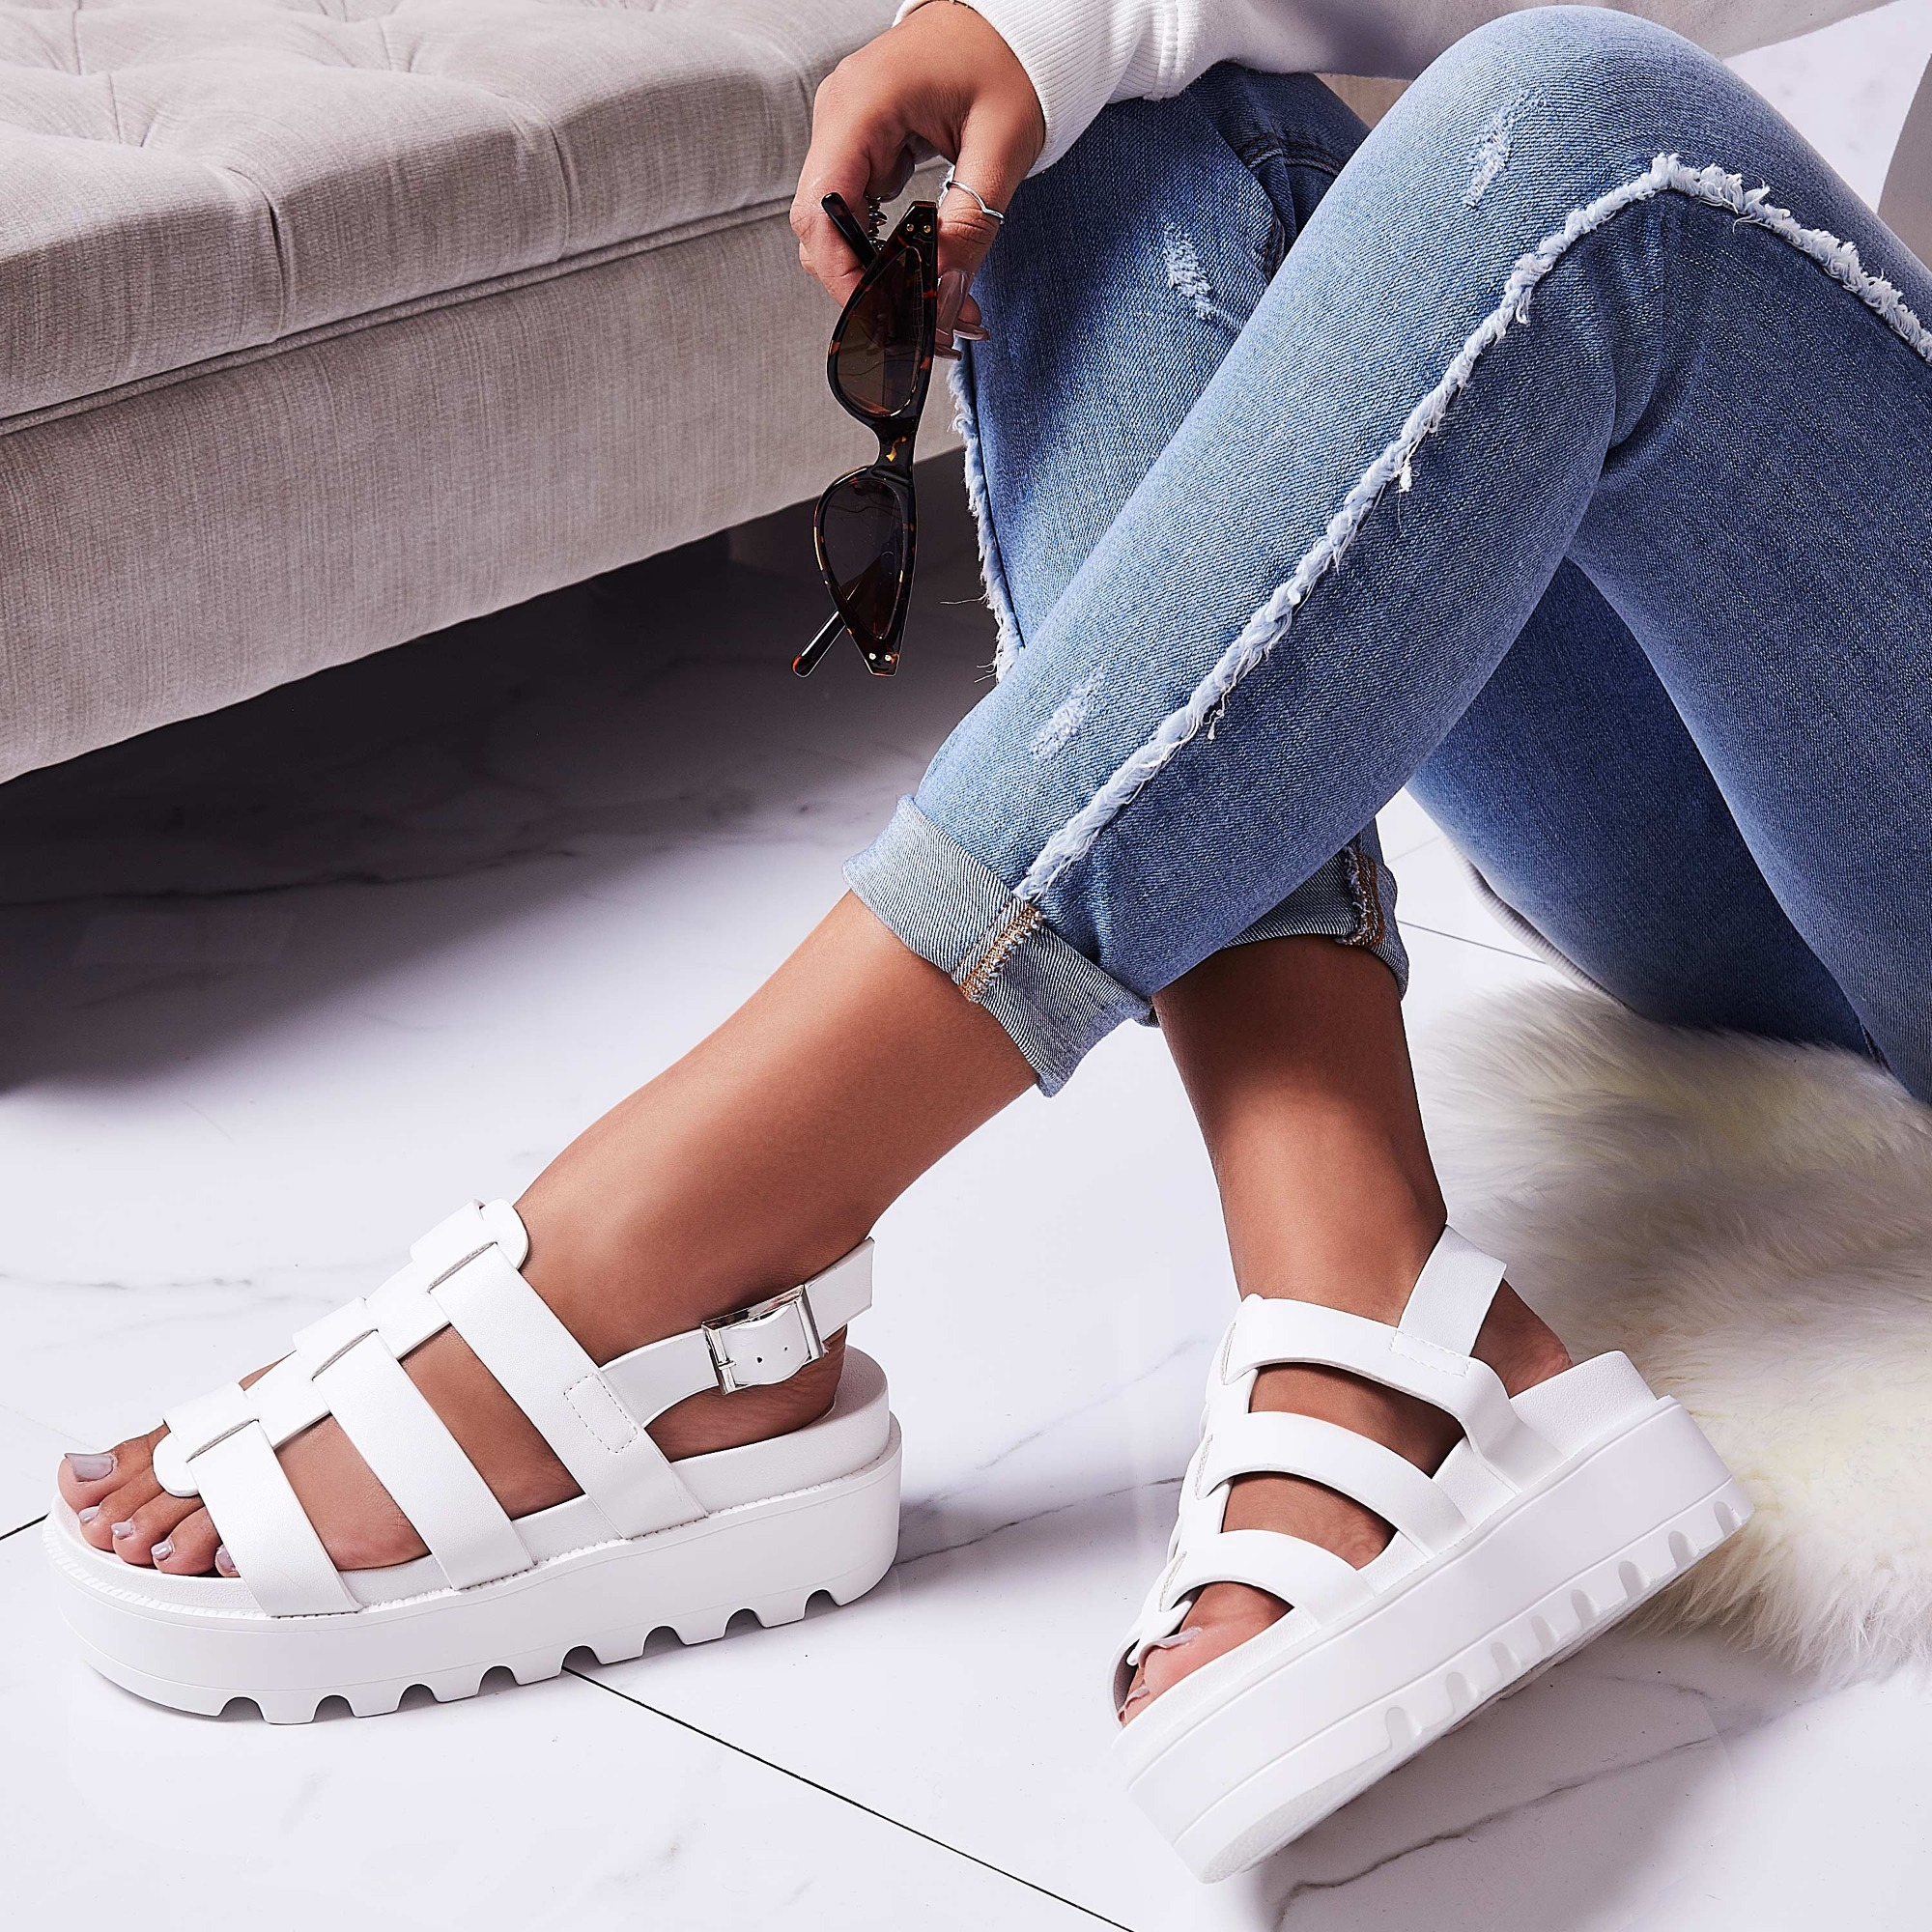 Zander Chunky Sole Sandal In White Faux Leather